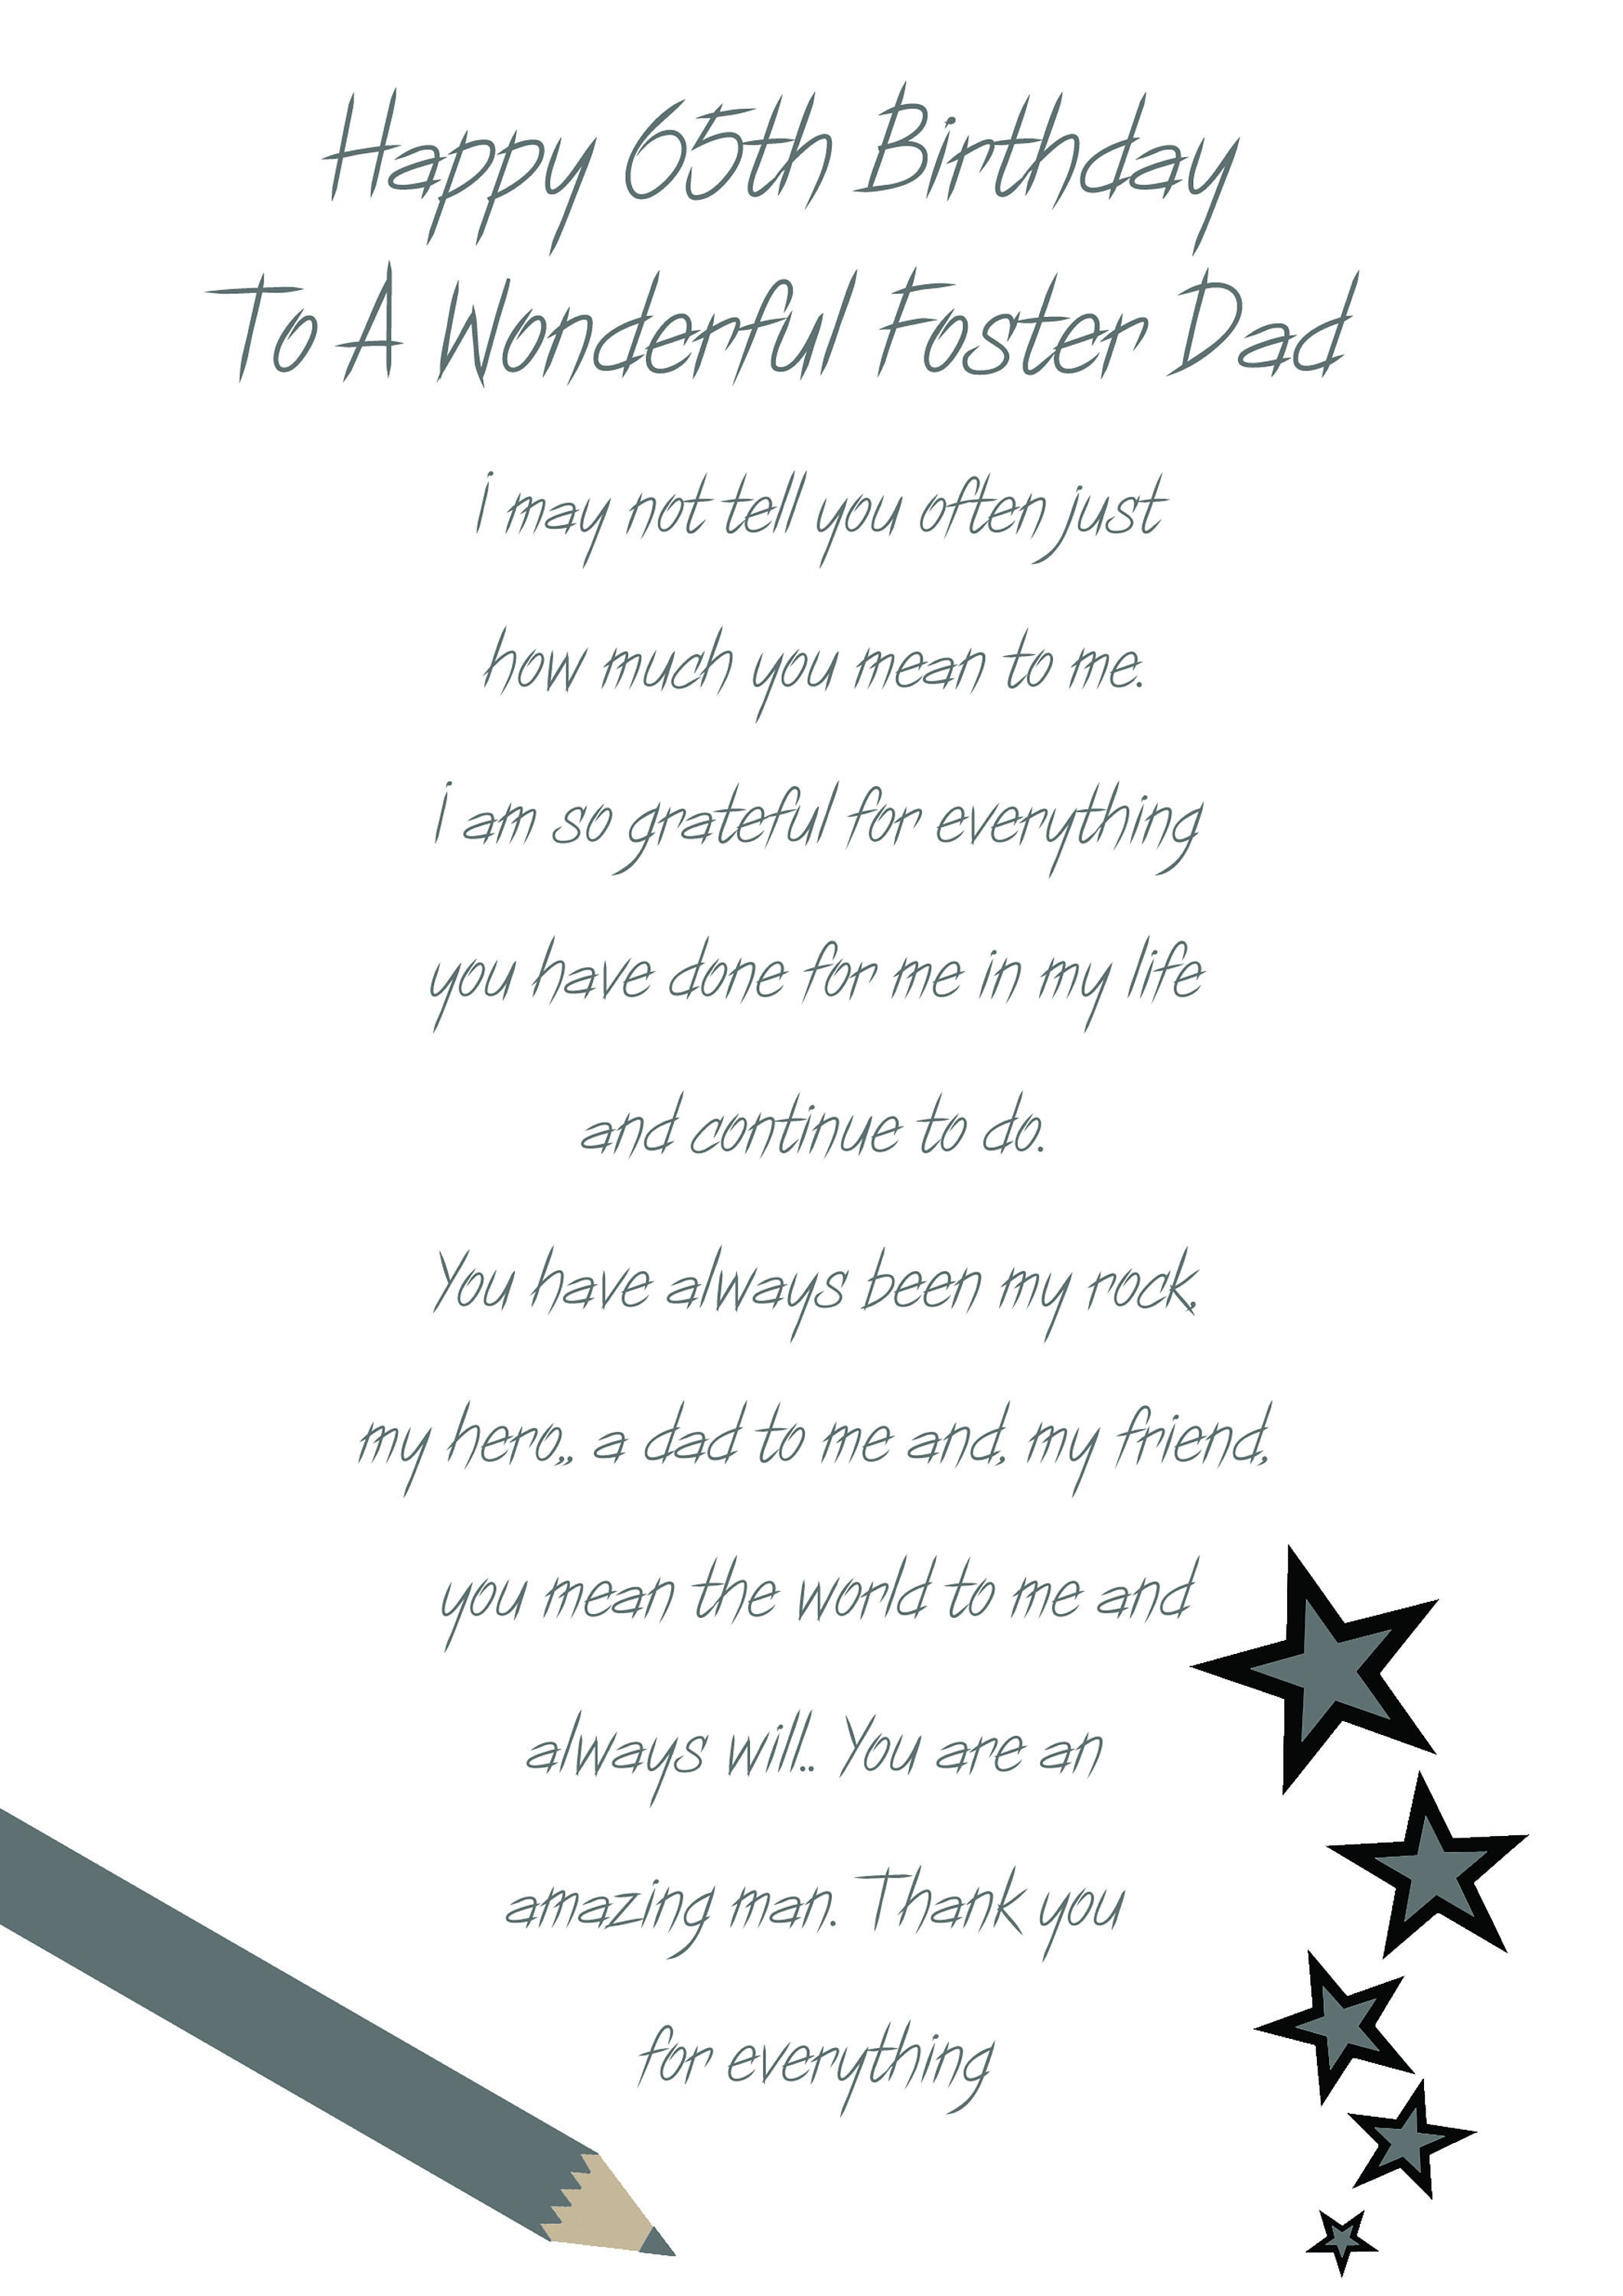 Foster Dad 65 Birthday Card